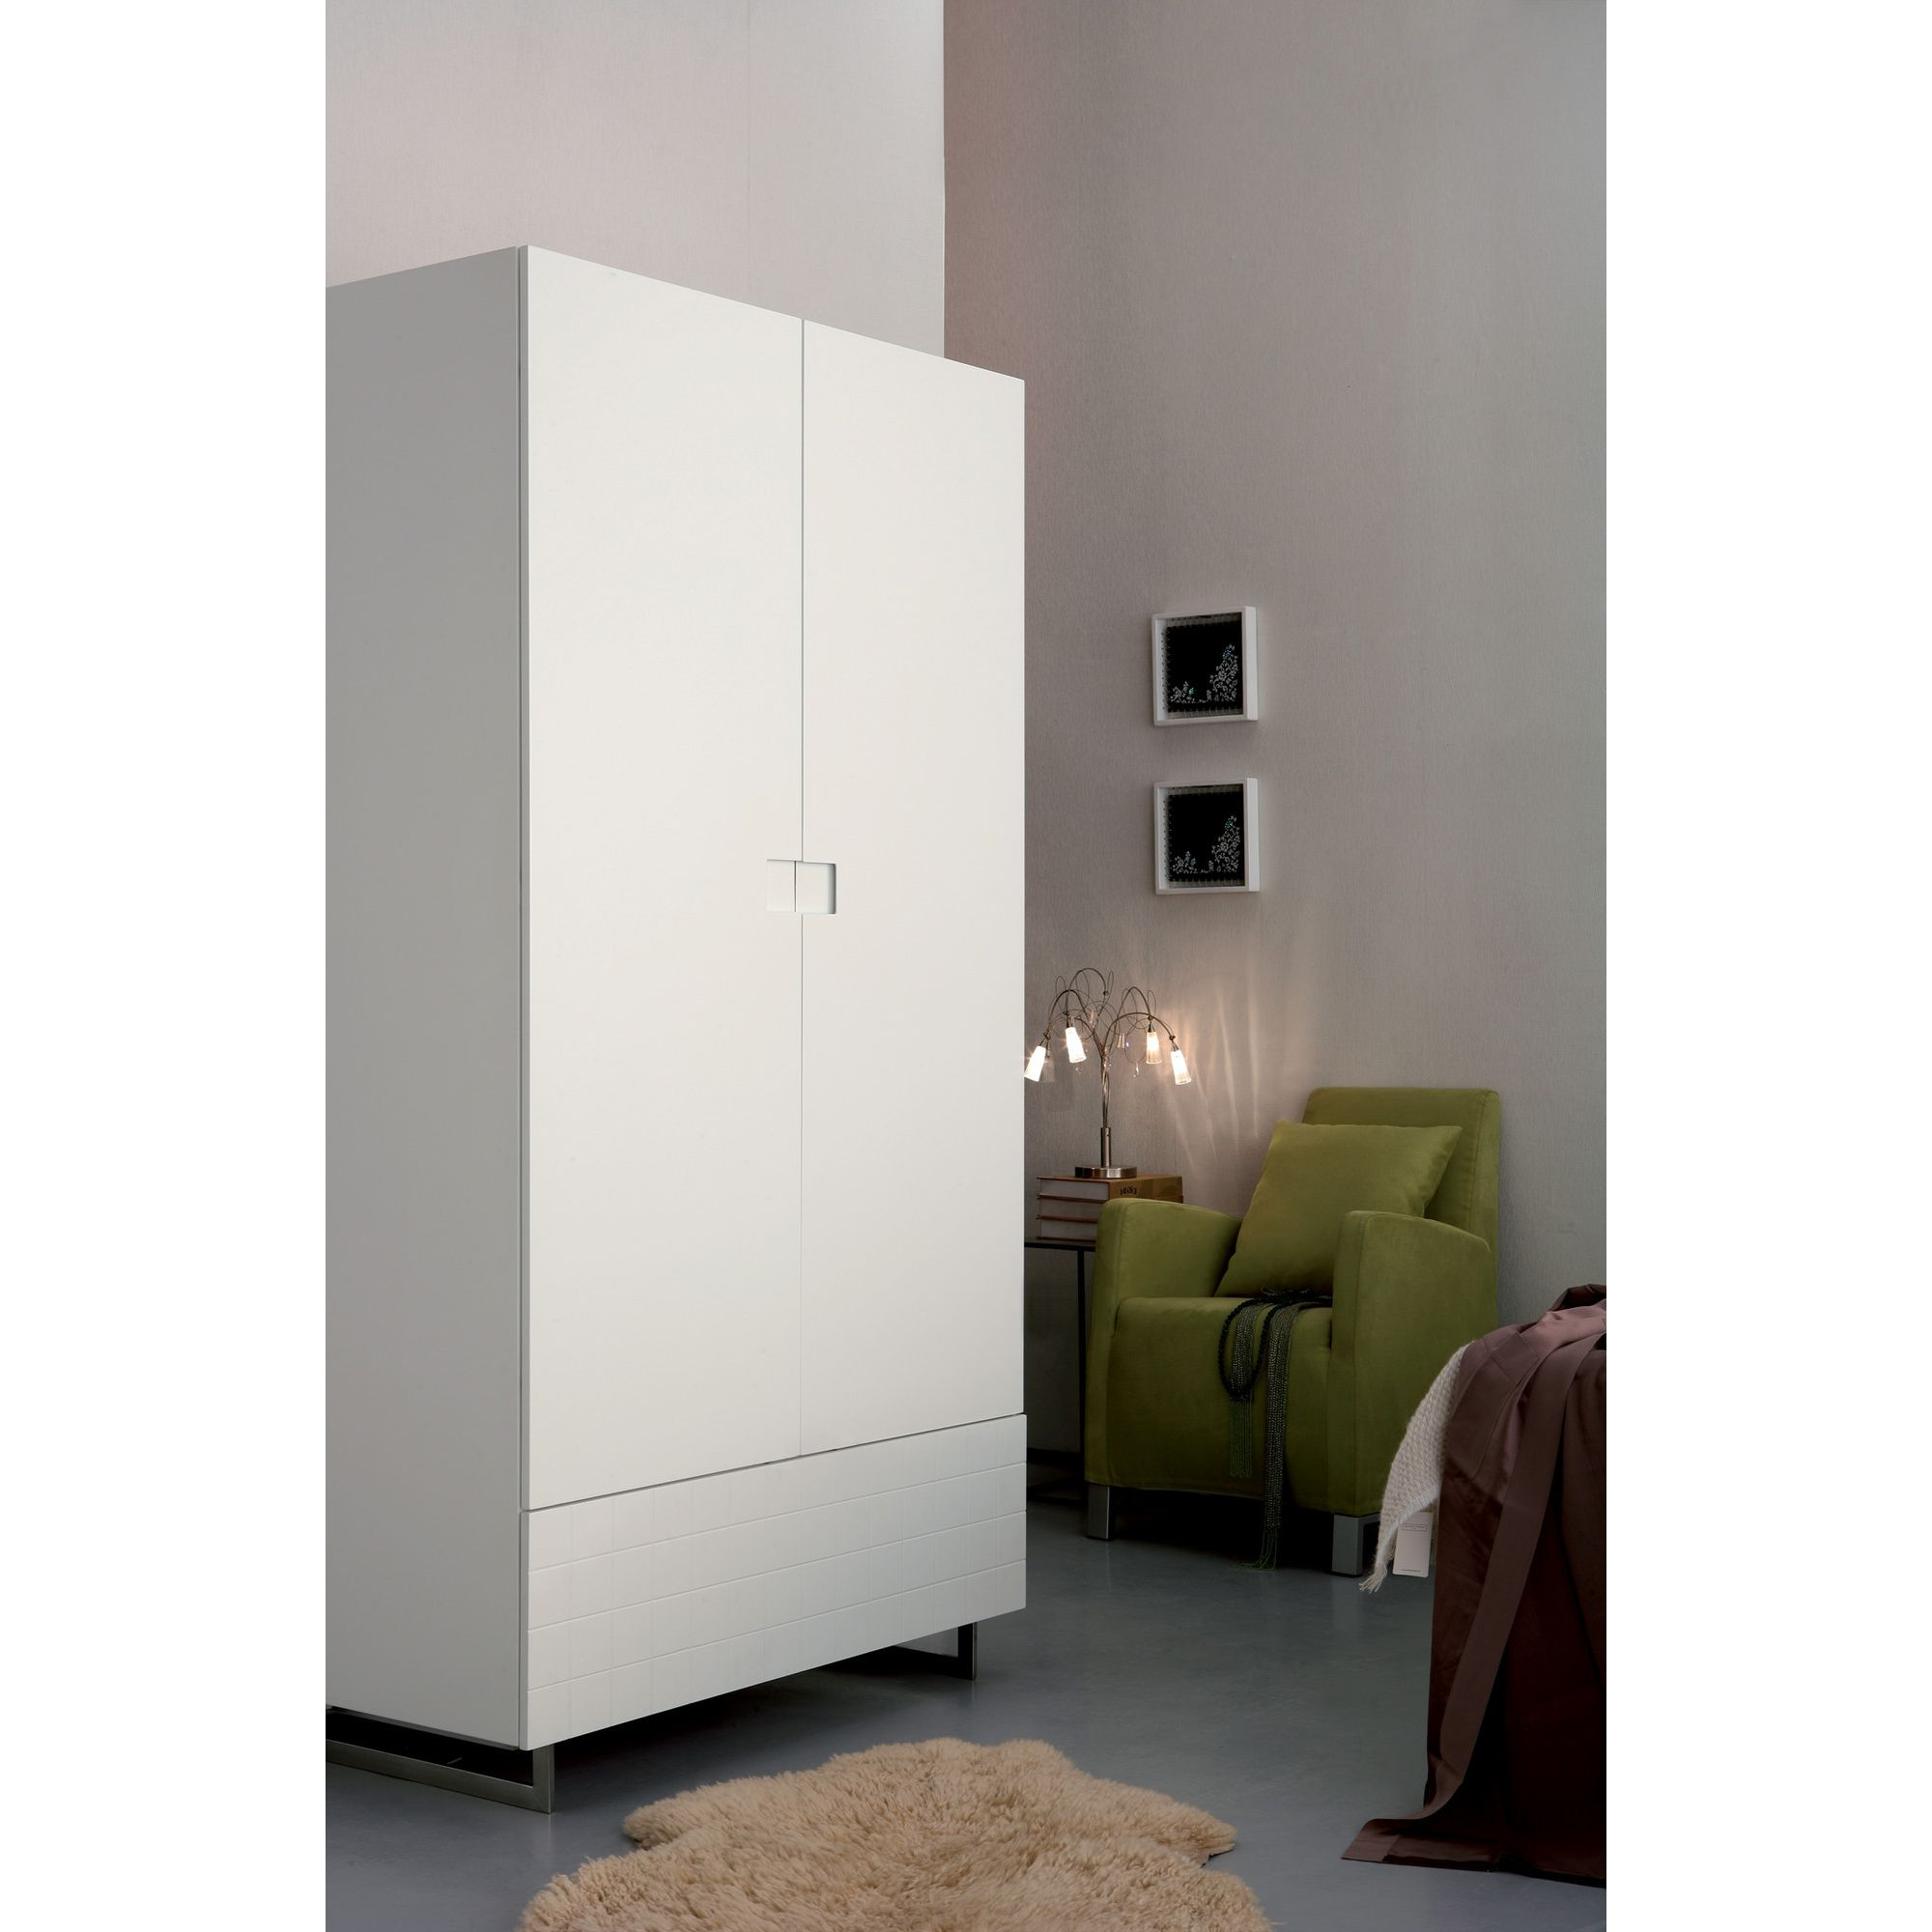 Gillmore Space Barcelona Wardrobe - White Lacquer (Matt) at Tesco Direct